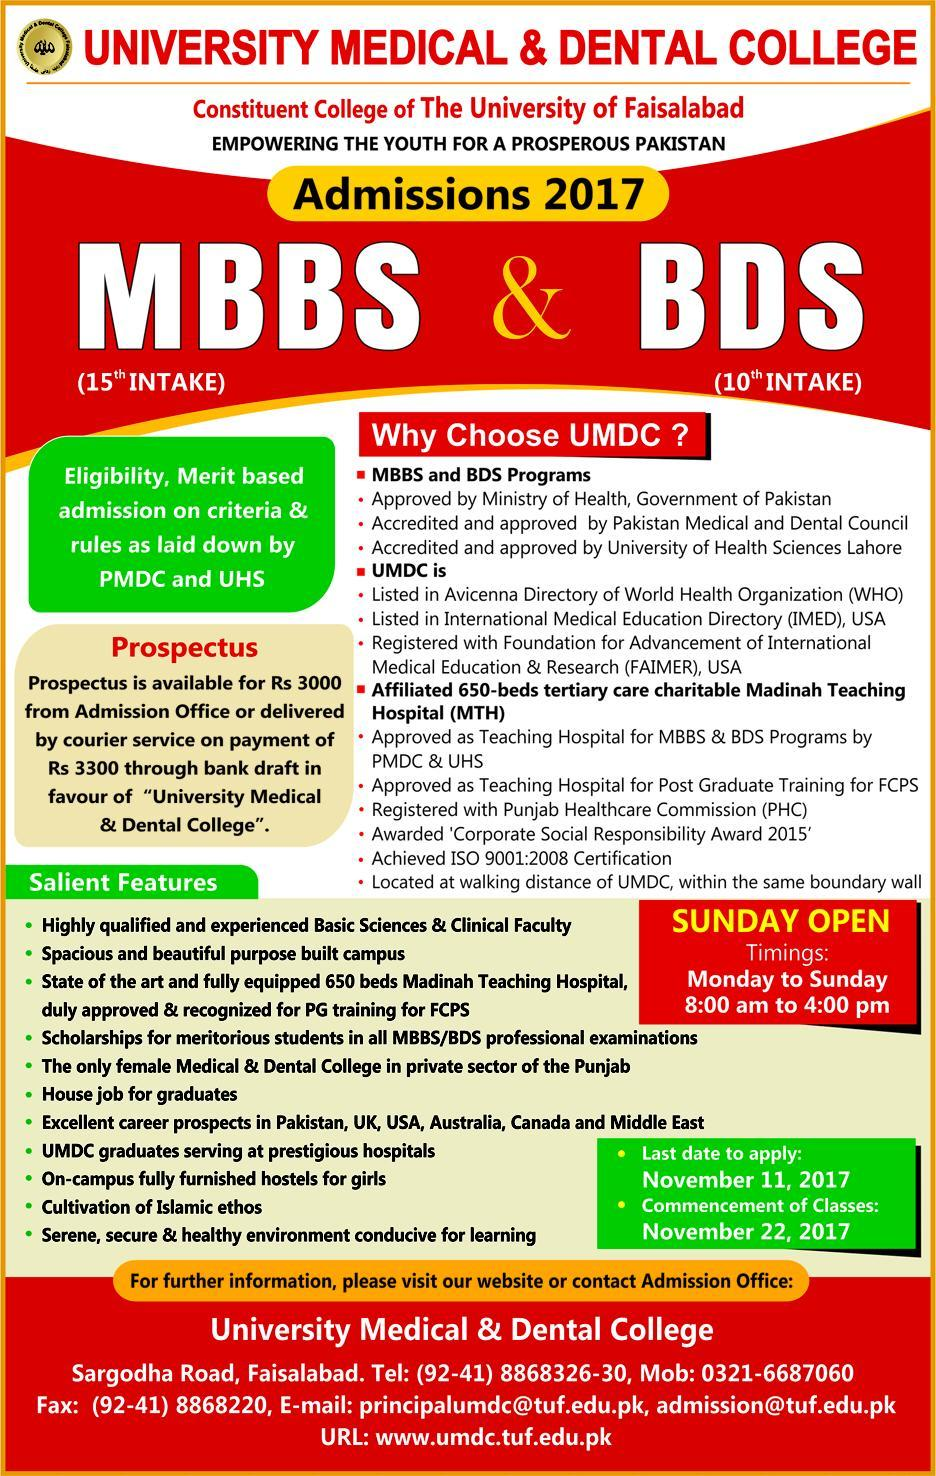 University Medical & Dental College, Faisalabad (MBBS & BDS) Admissions Open 2017